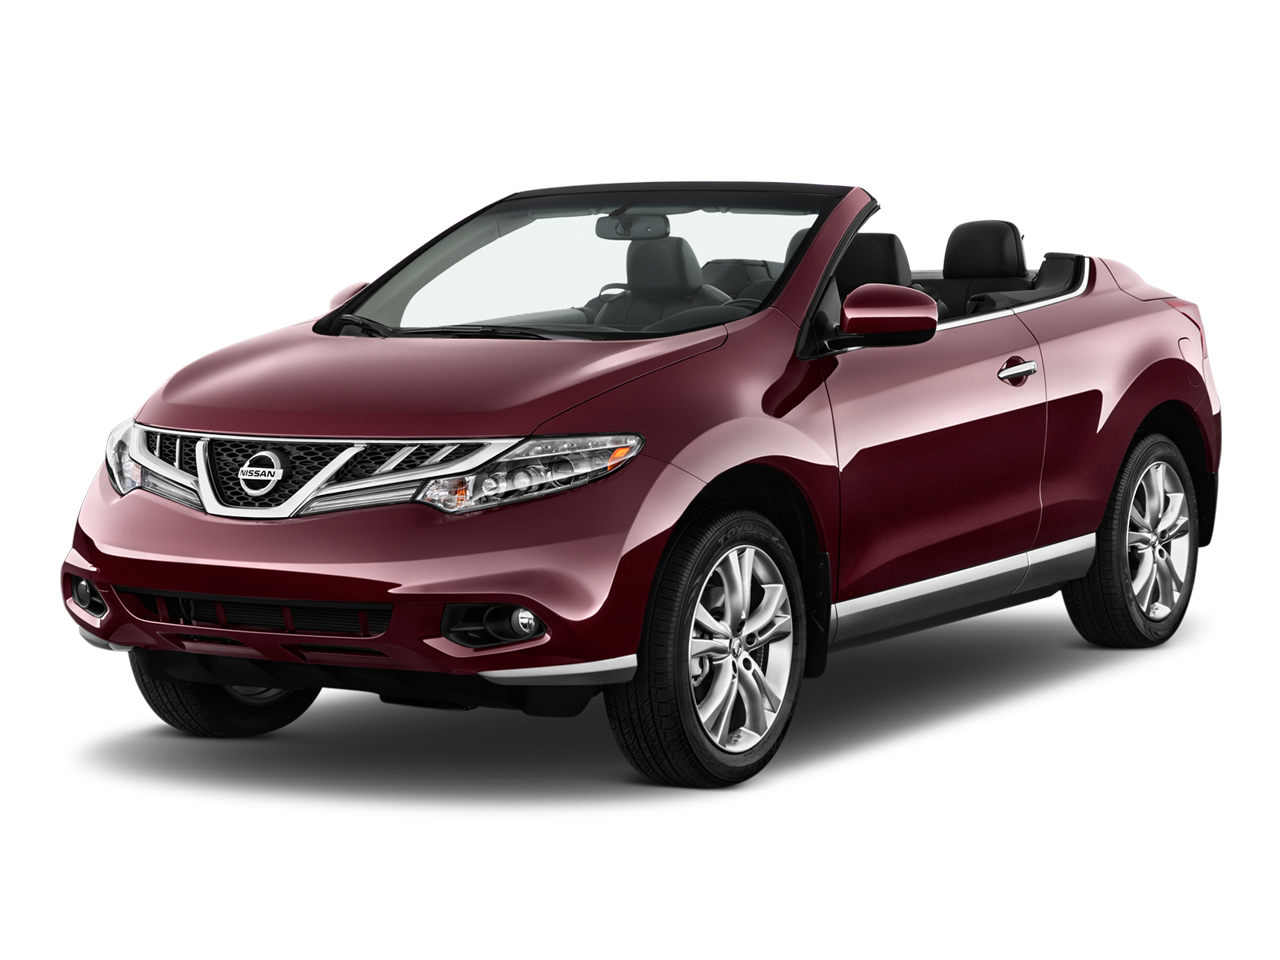 Jeep Cars And Prices >> 2011 Nissan Murano CrossCabriolet Review, Ratings, Specs, Prices, and Photos - The Car Connection